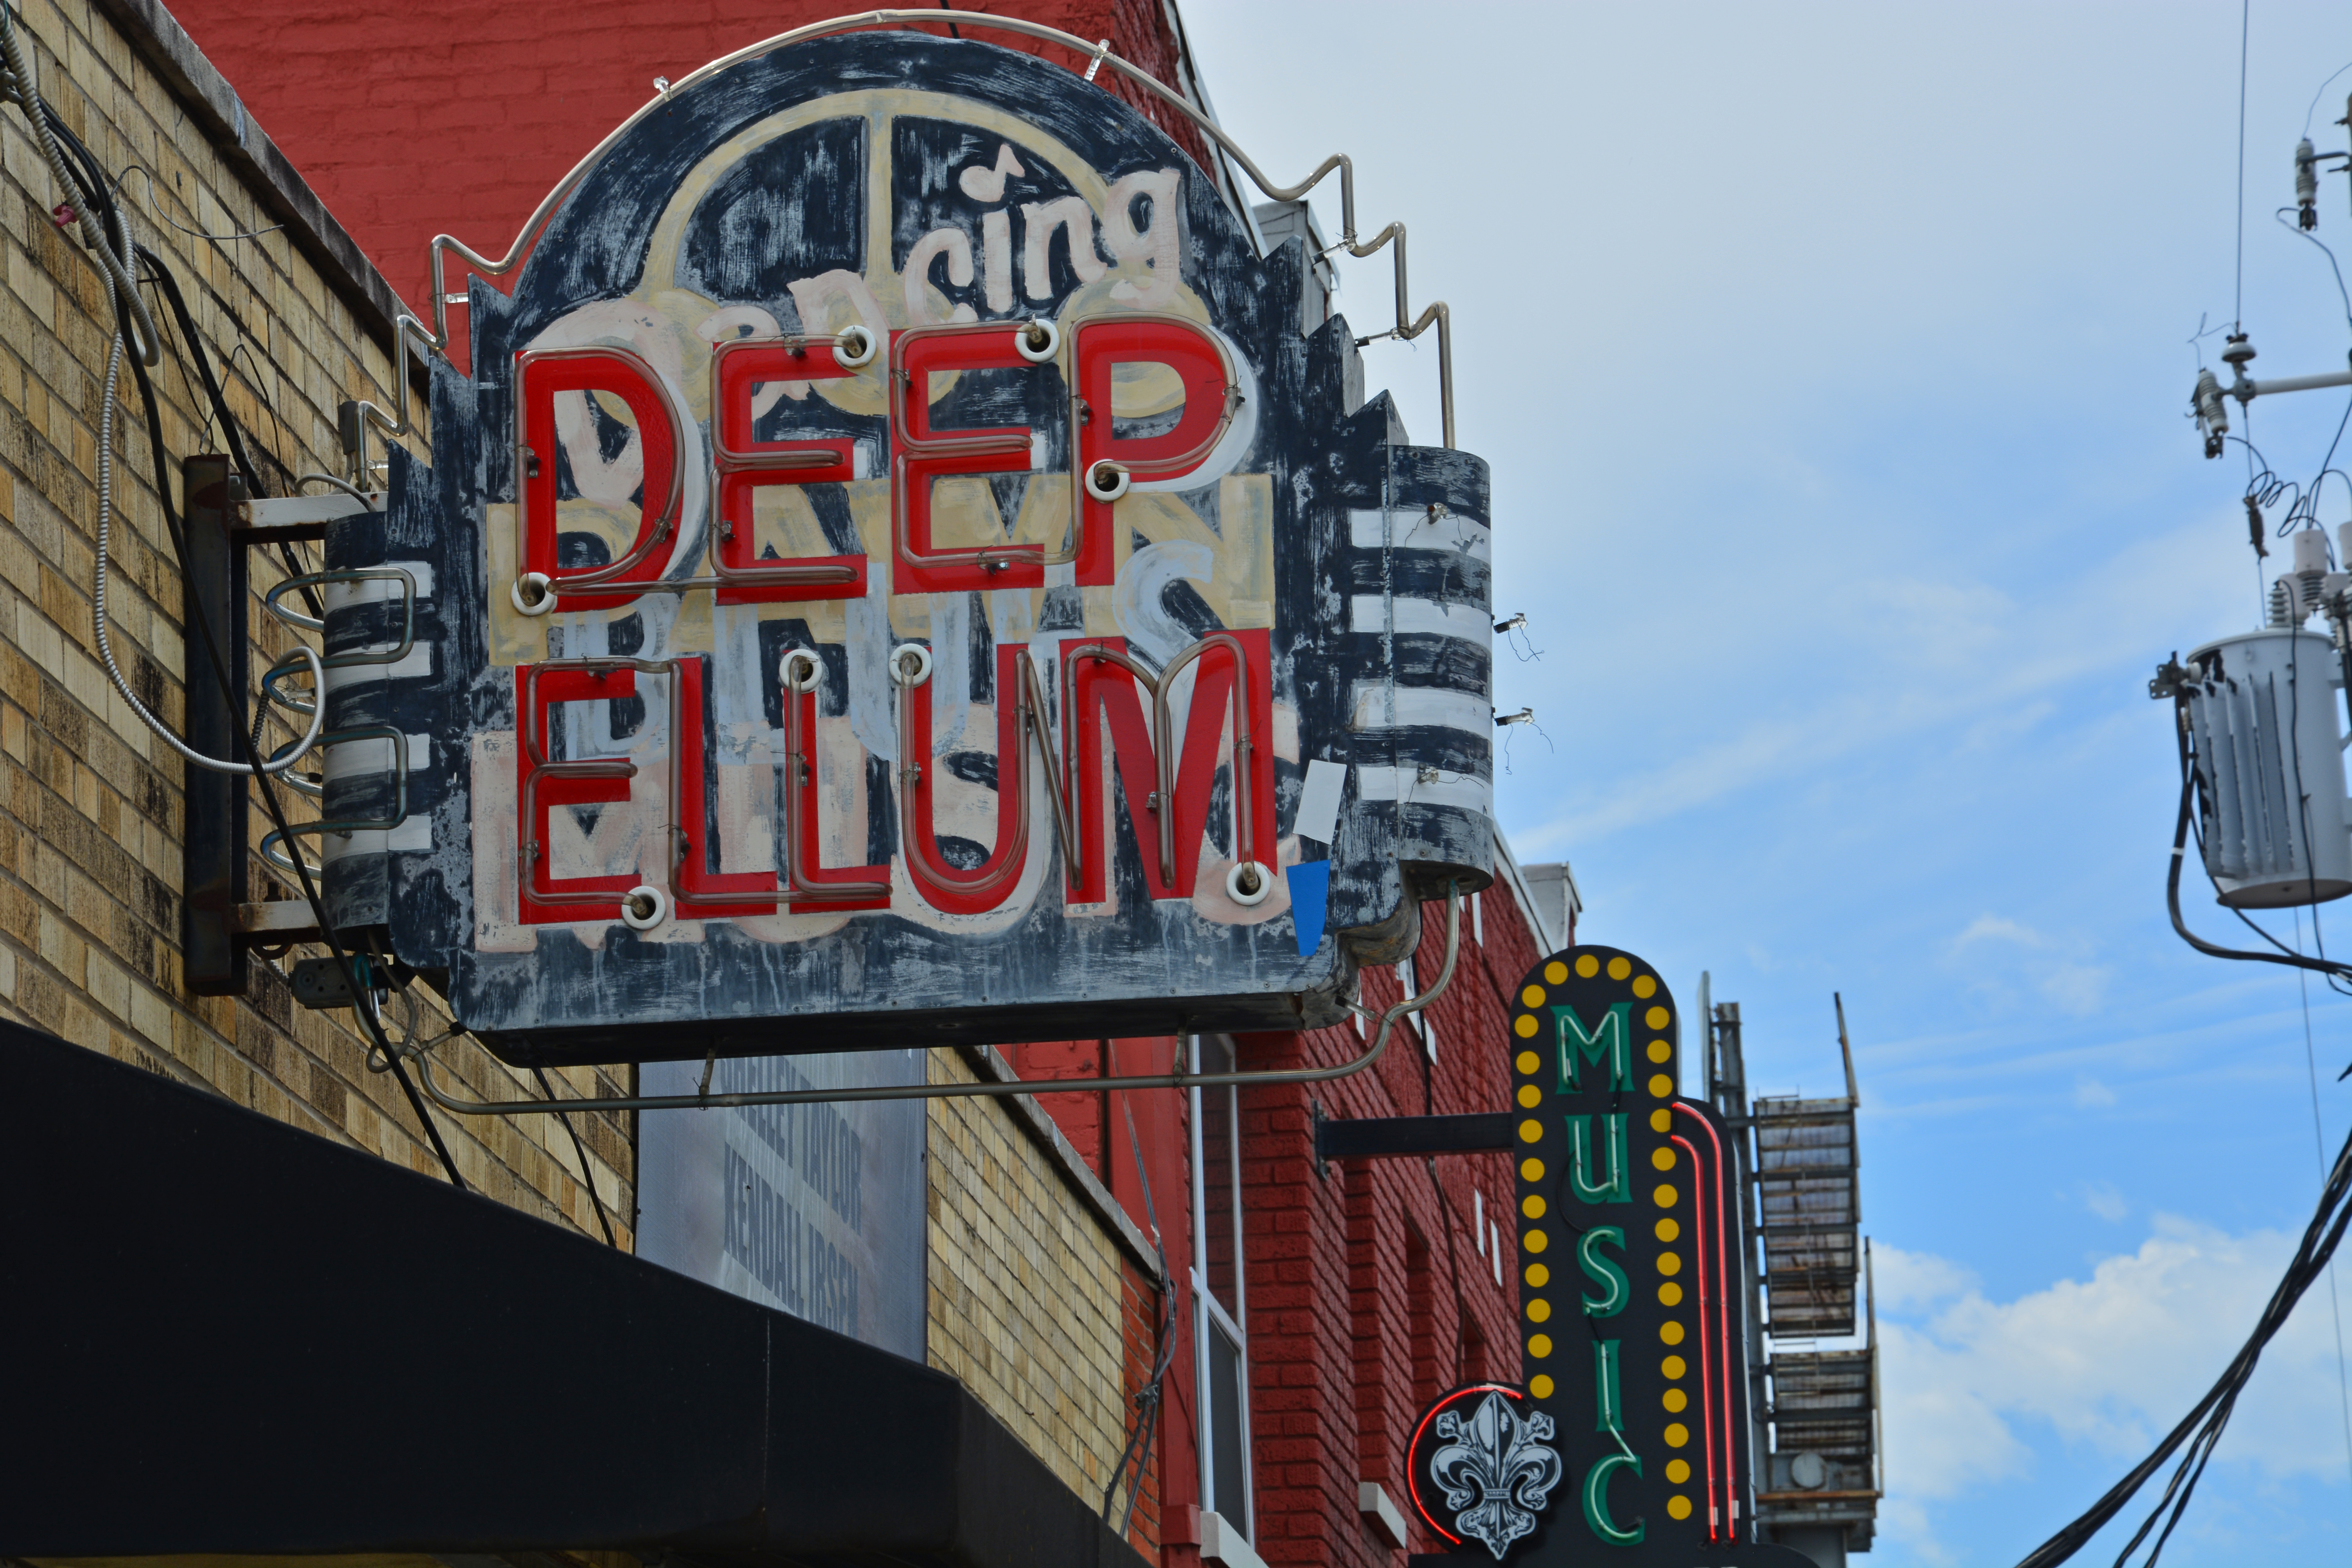 Deep Ellum Bartender Fired, Charged With Assault After Video of Violent Beating Goes Viral